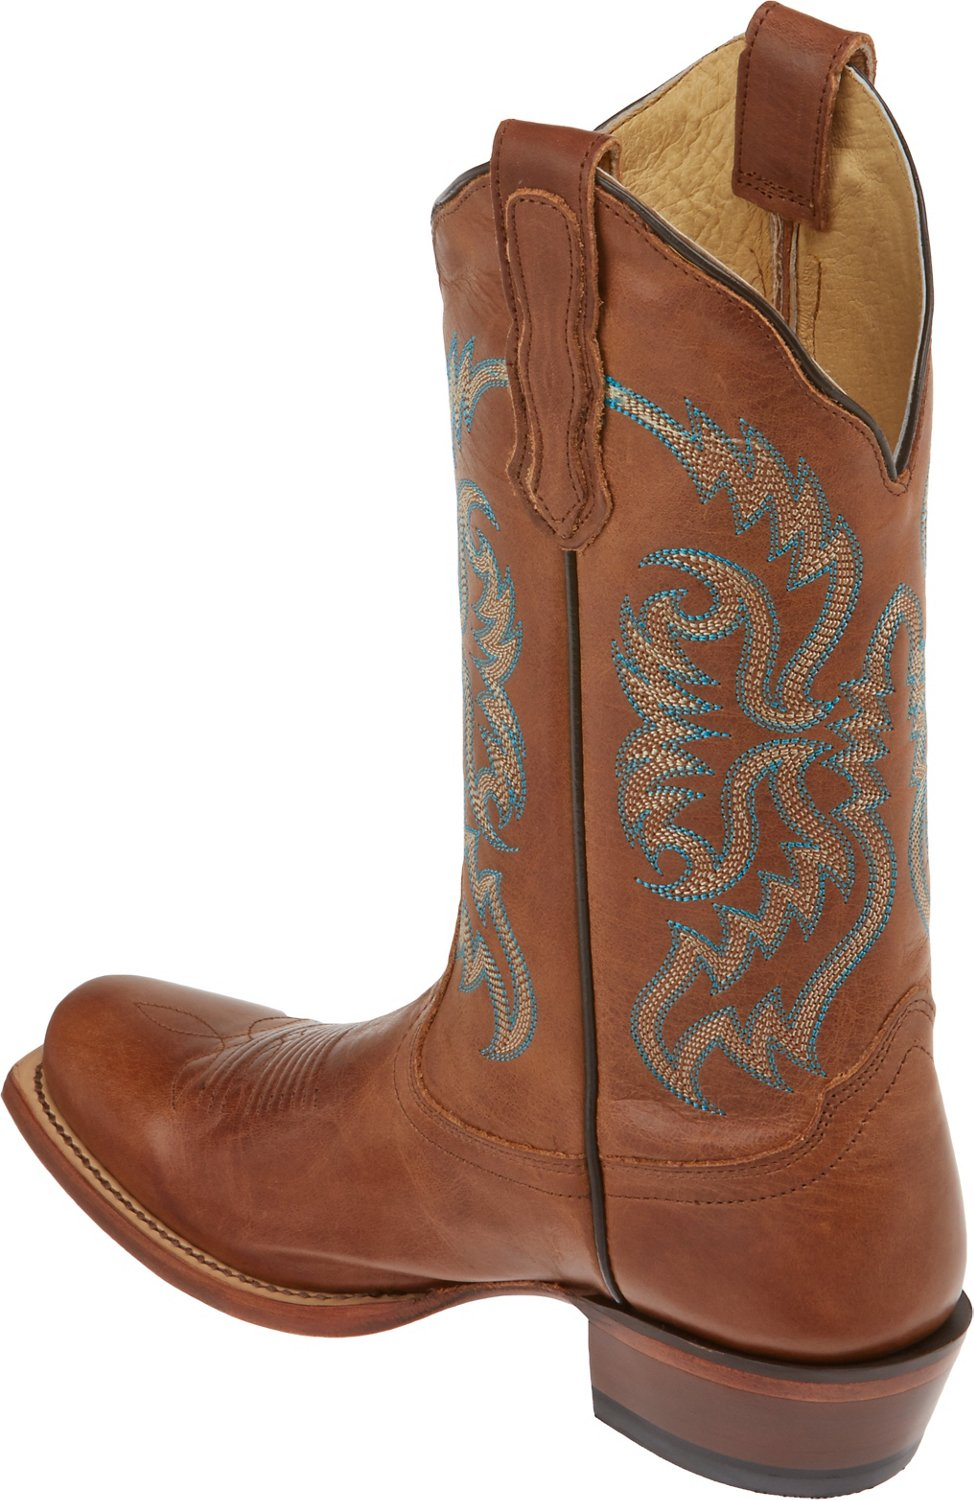 Nocona Boots Women's Fashion Western Boots - view number 1